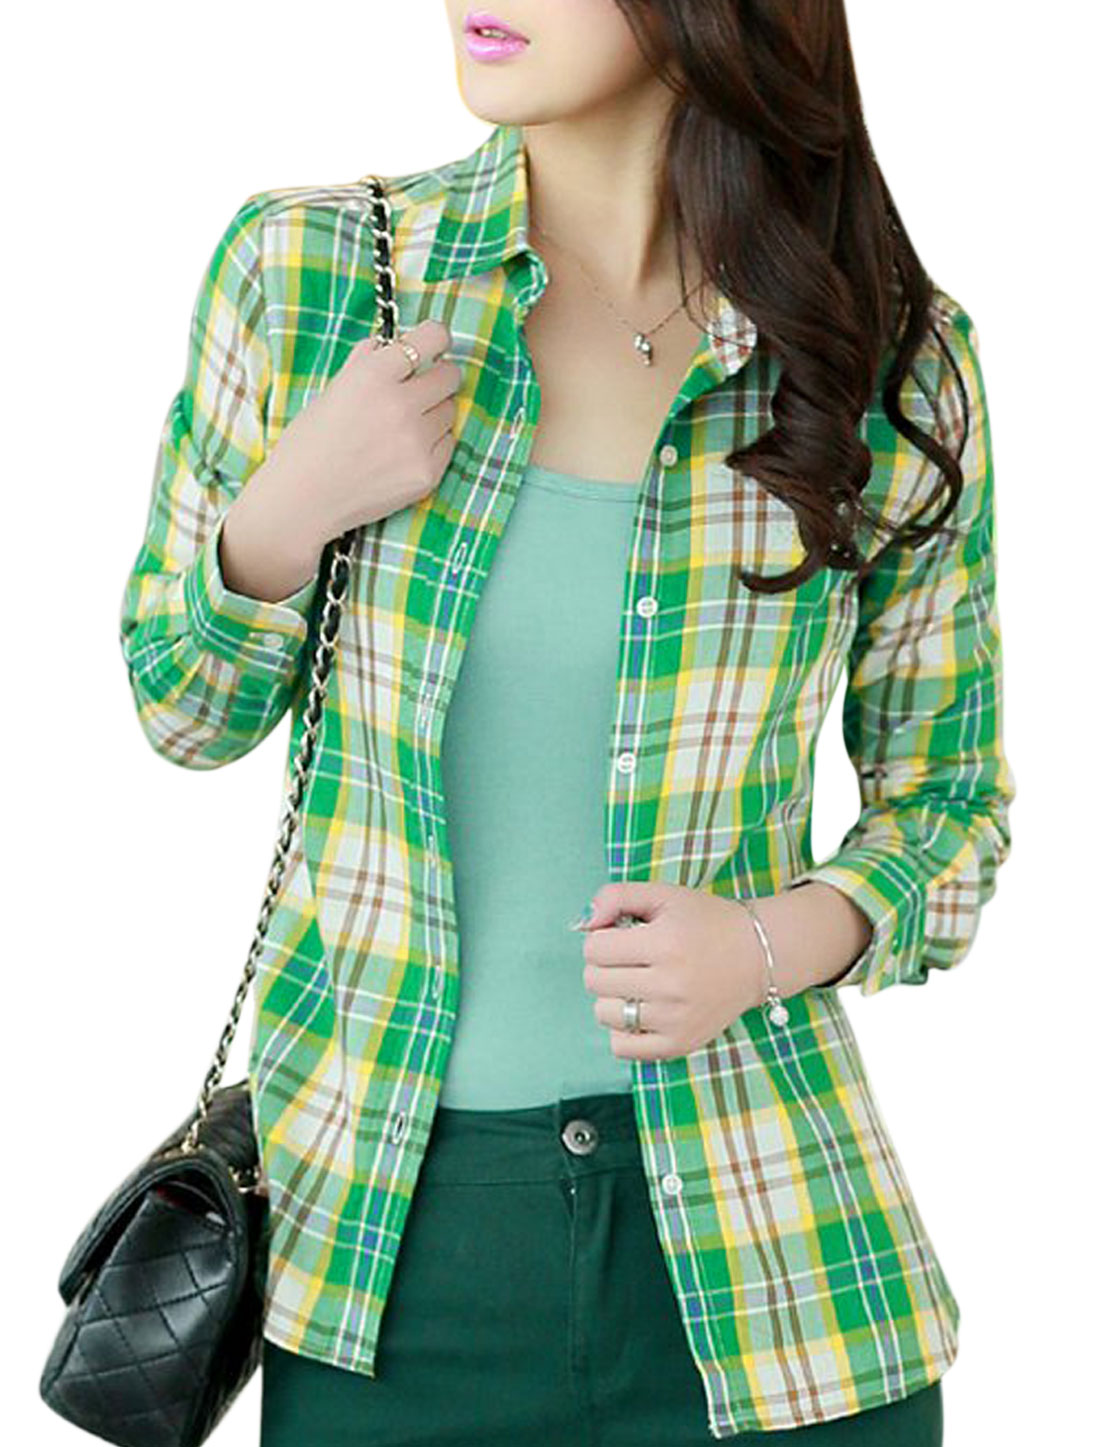 Women Point Collar Plaids Pattern Single Breasted Shirt Brown Green S